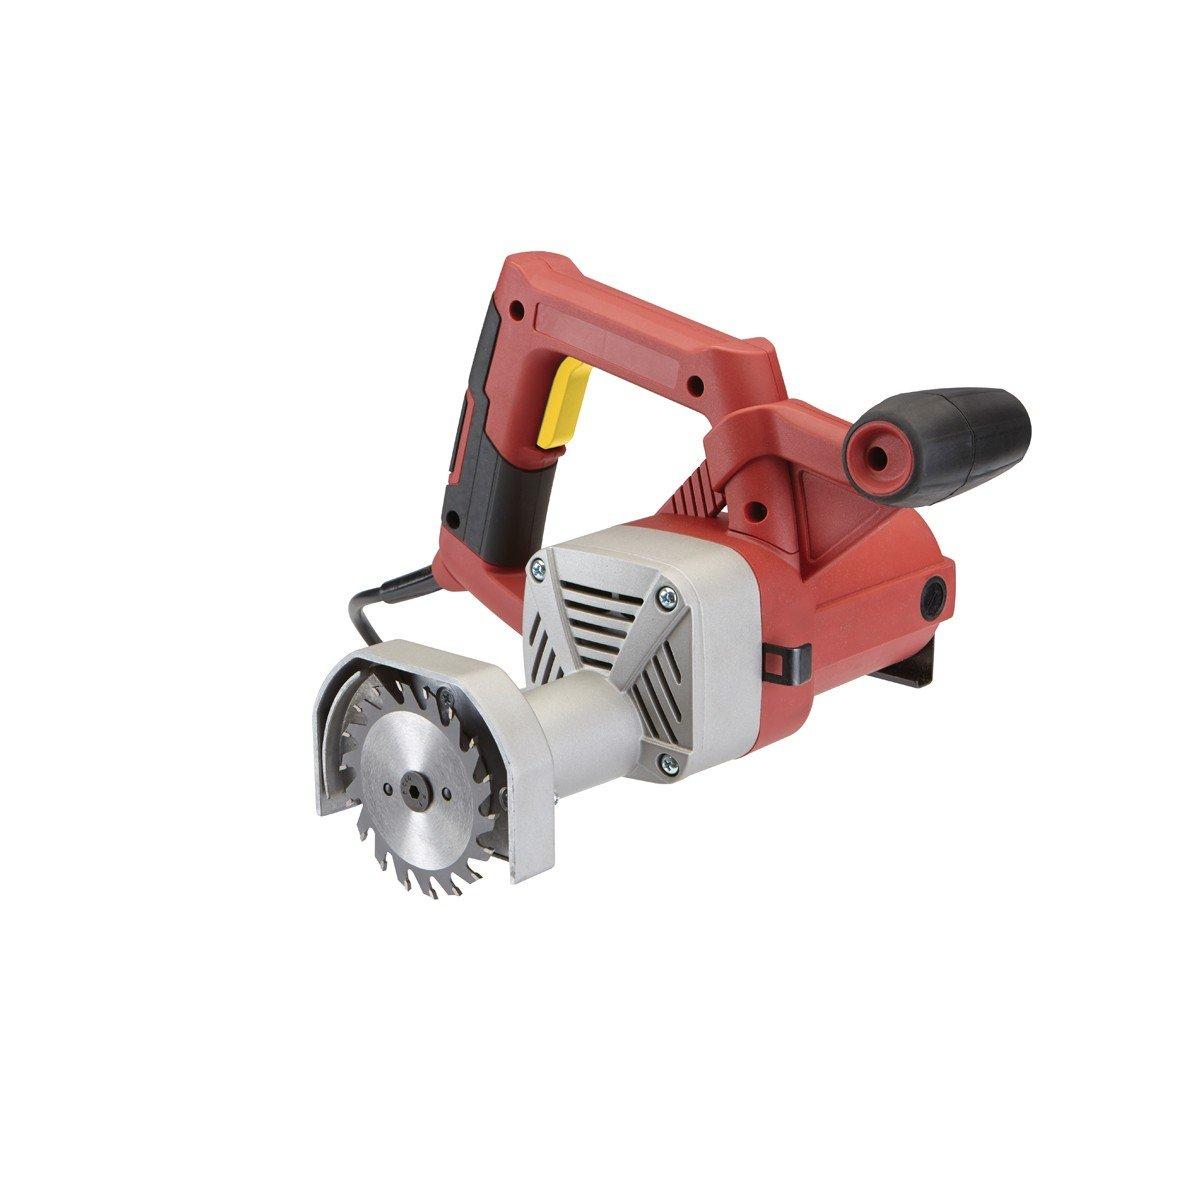 3-3 8 in. 6.8 Amp Heavy Duty Toe-Kick Saw